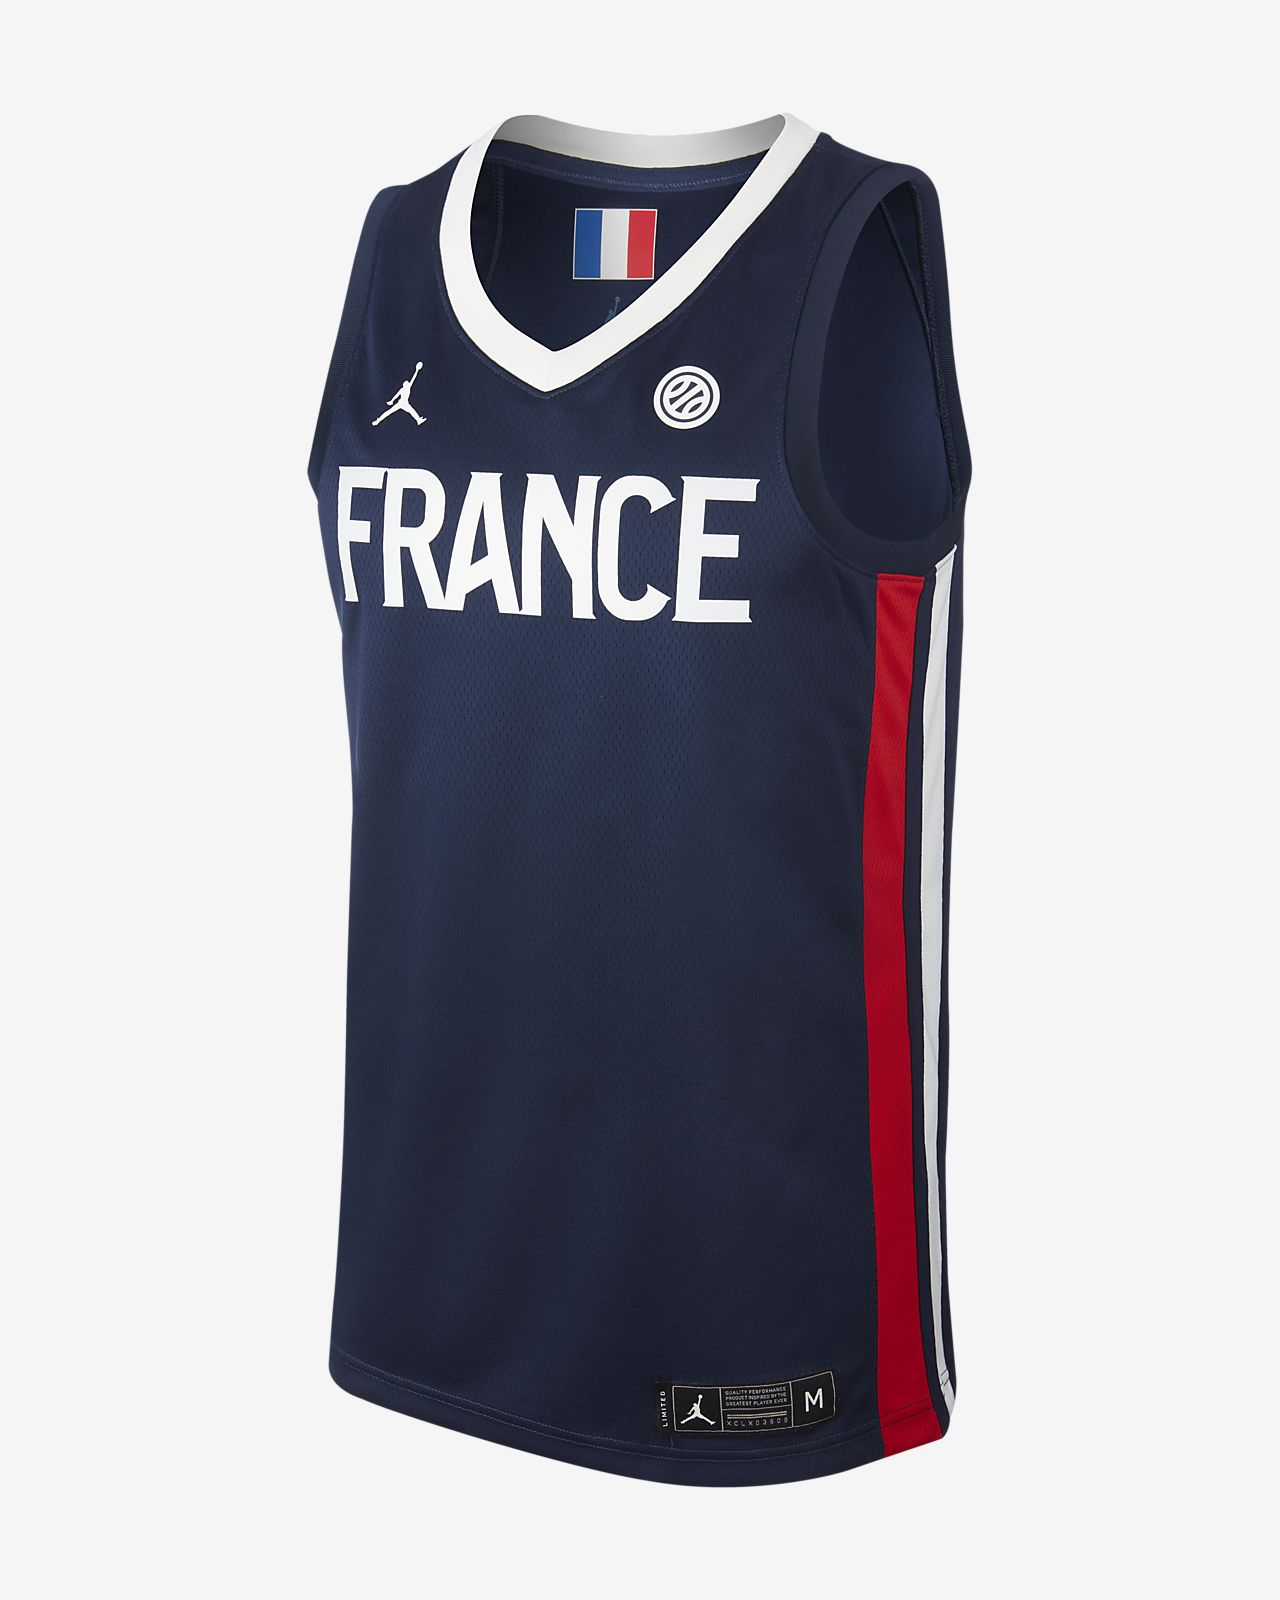 Maillot de basketball France Jordan (Road) pour Homme